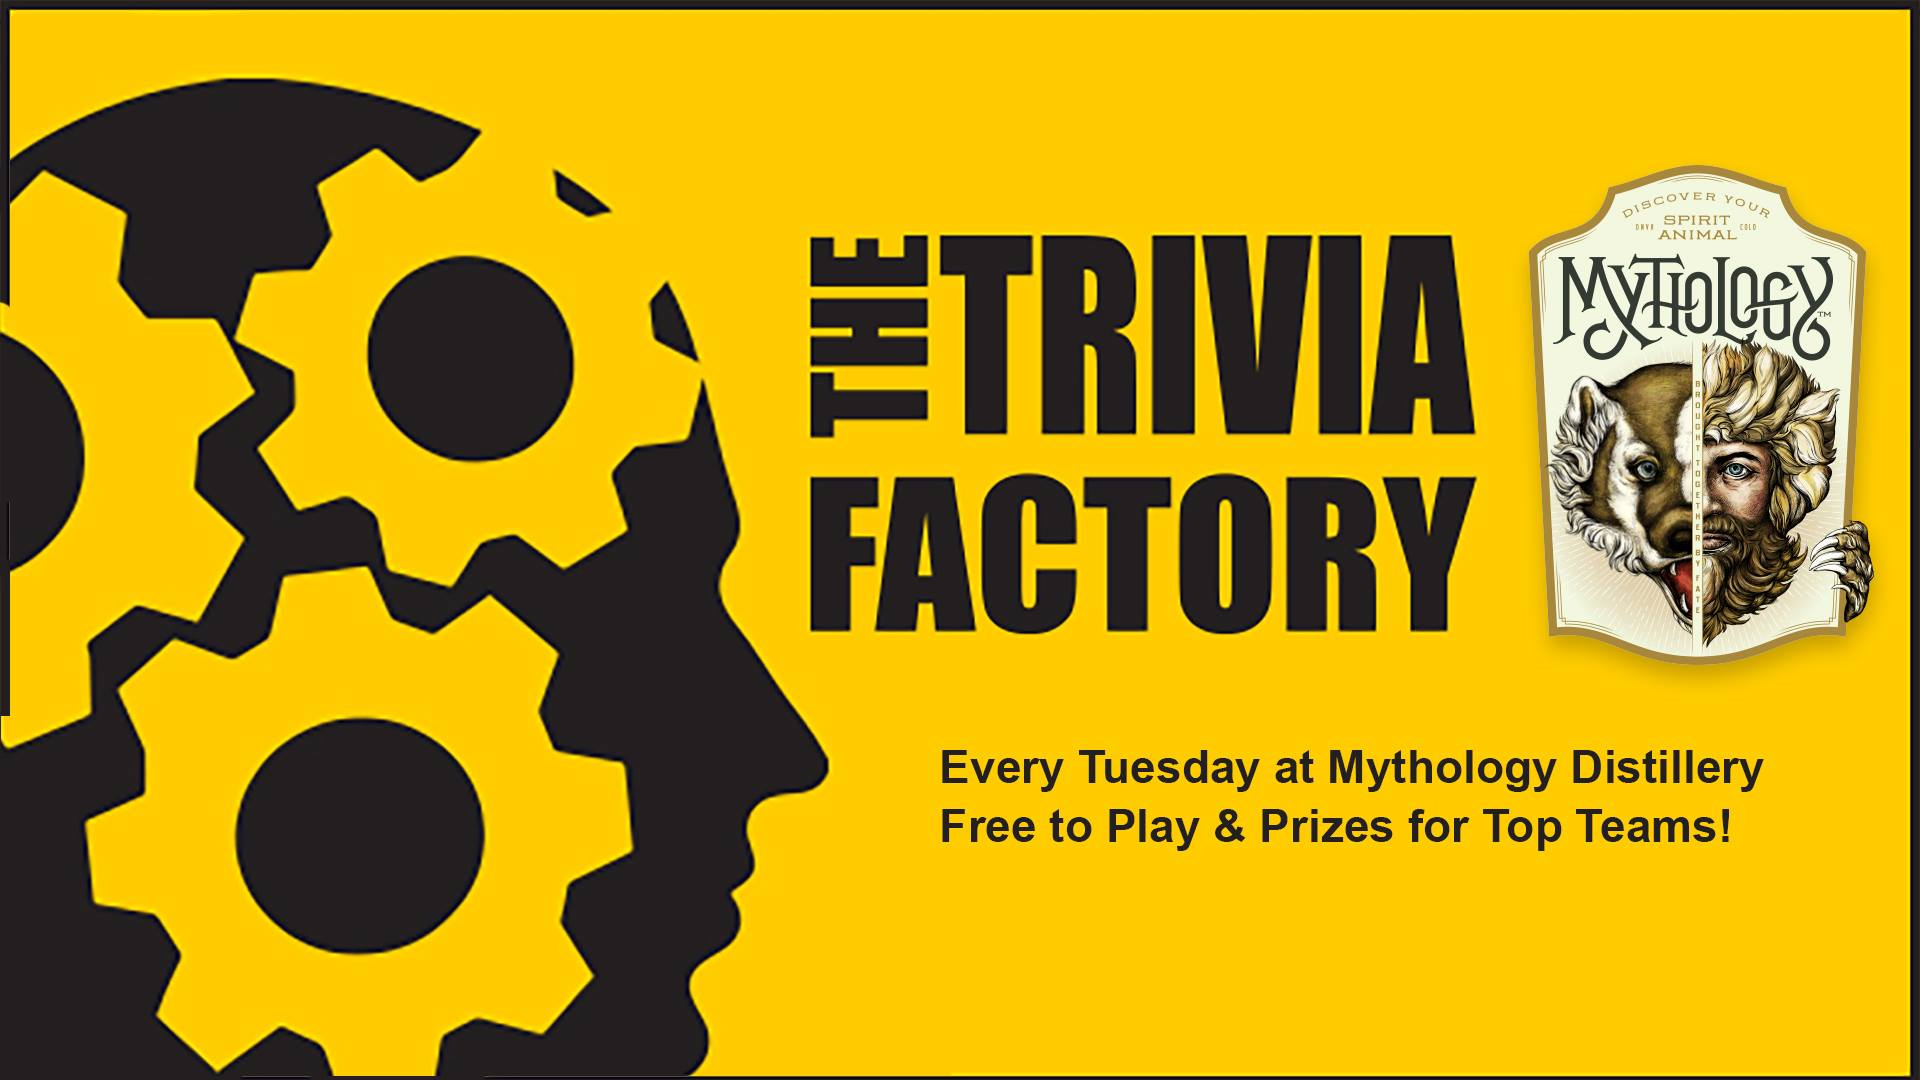 trivia night mythology distillery